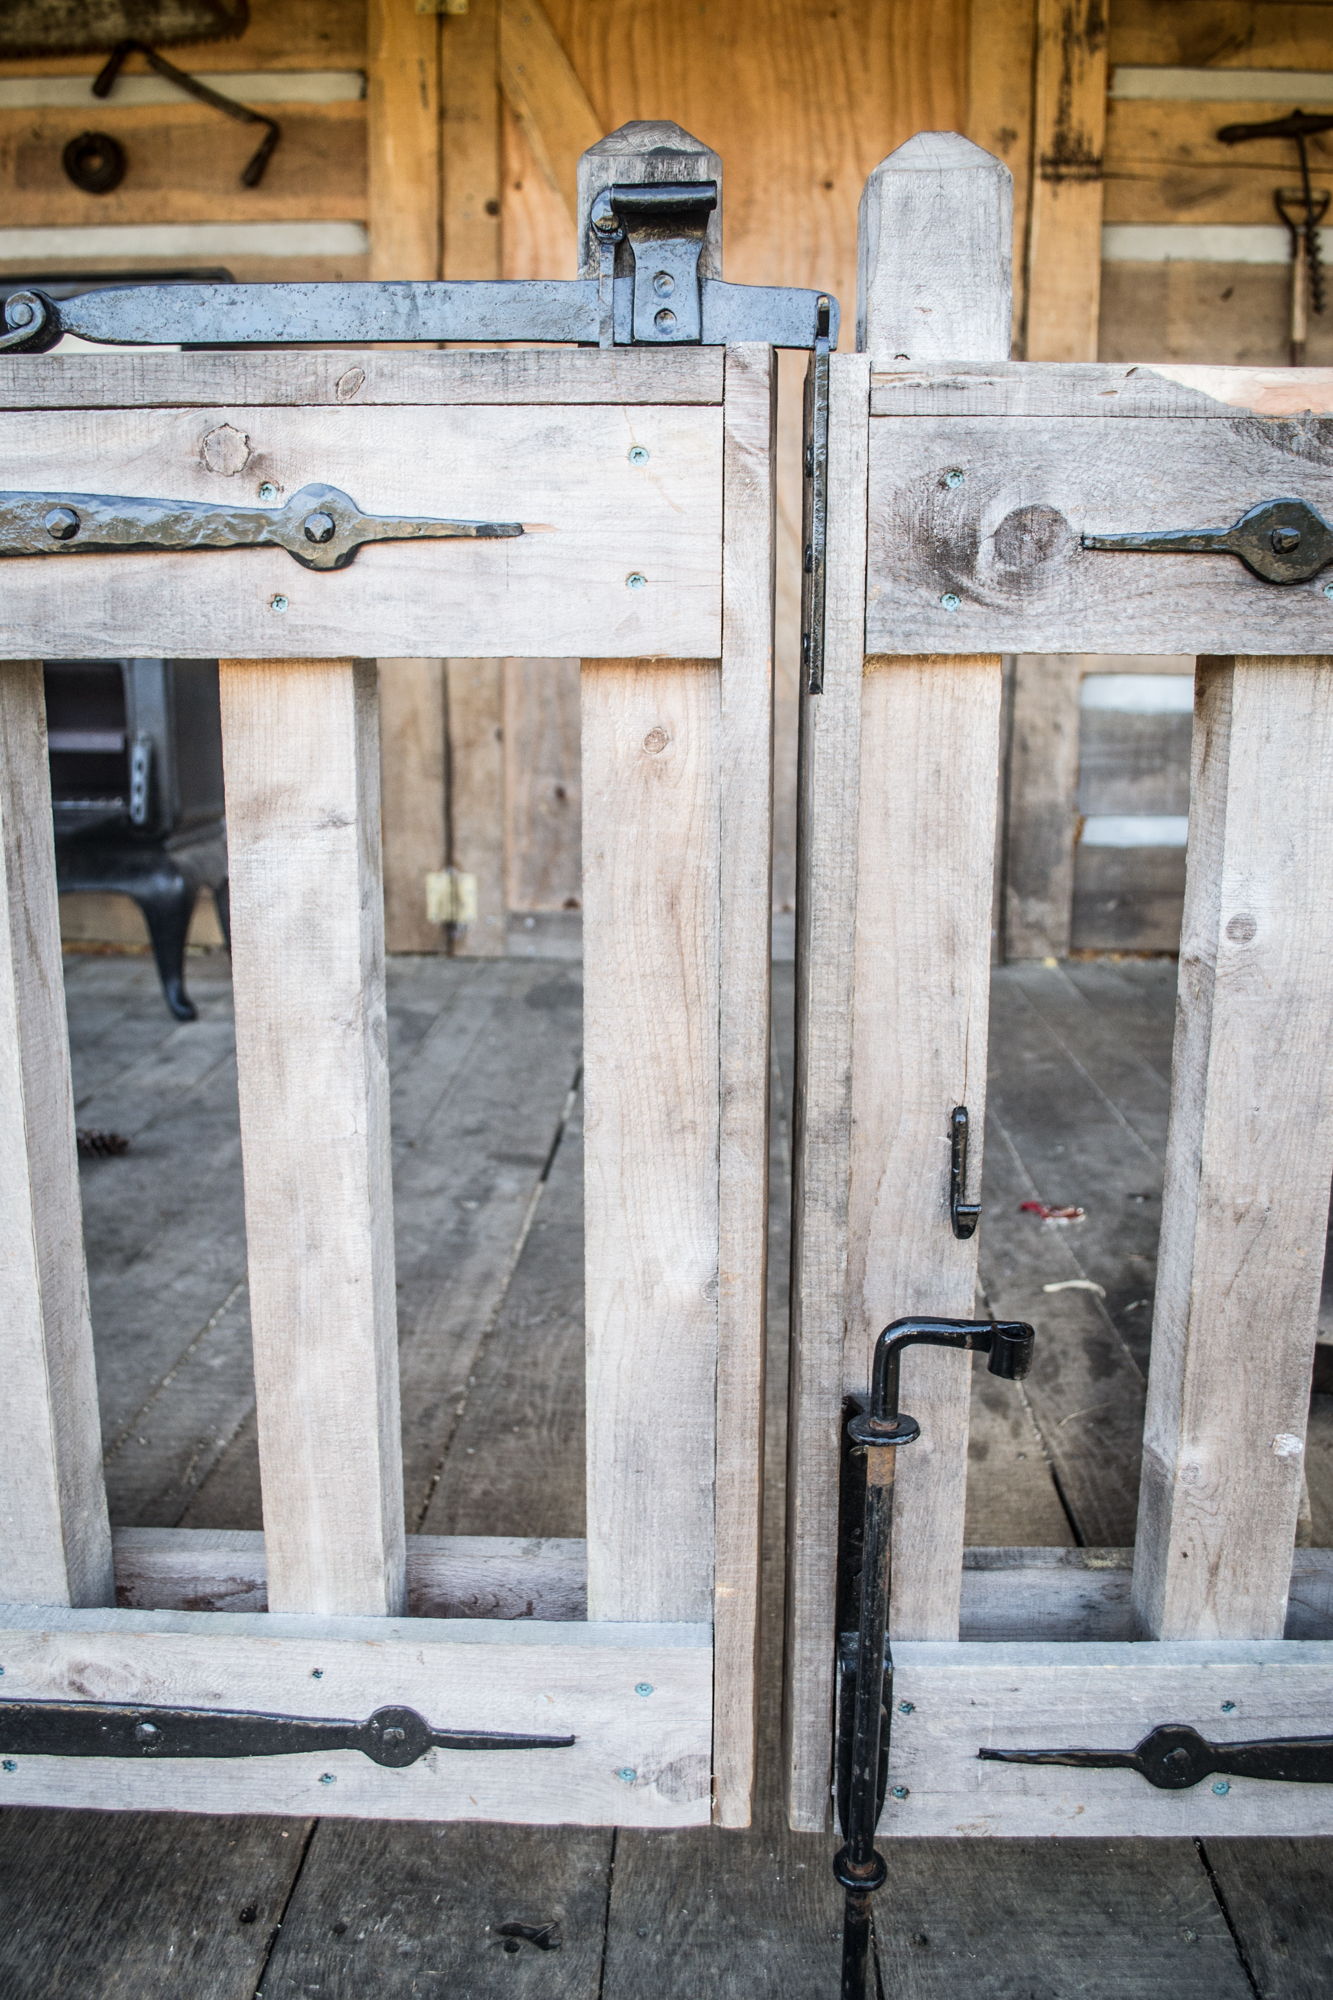 The gate hardware set consists of 4 strap hinges, a latch, and a bolt to fasten the secondary gate in place.